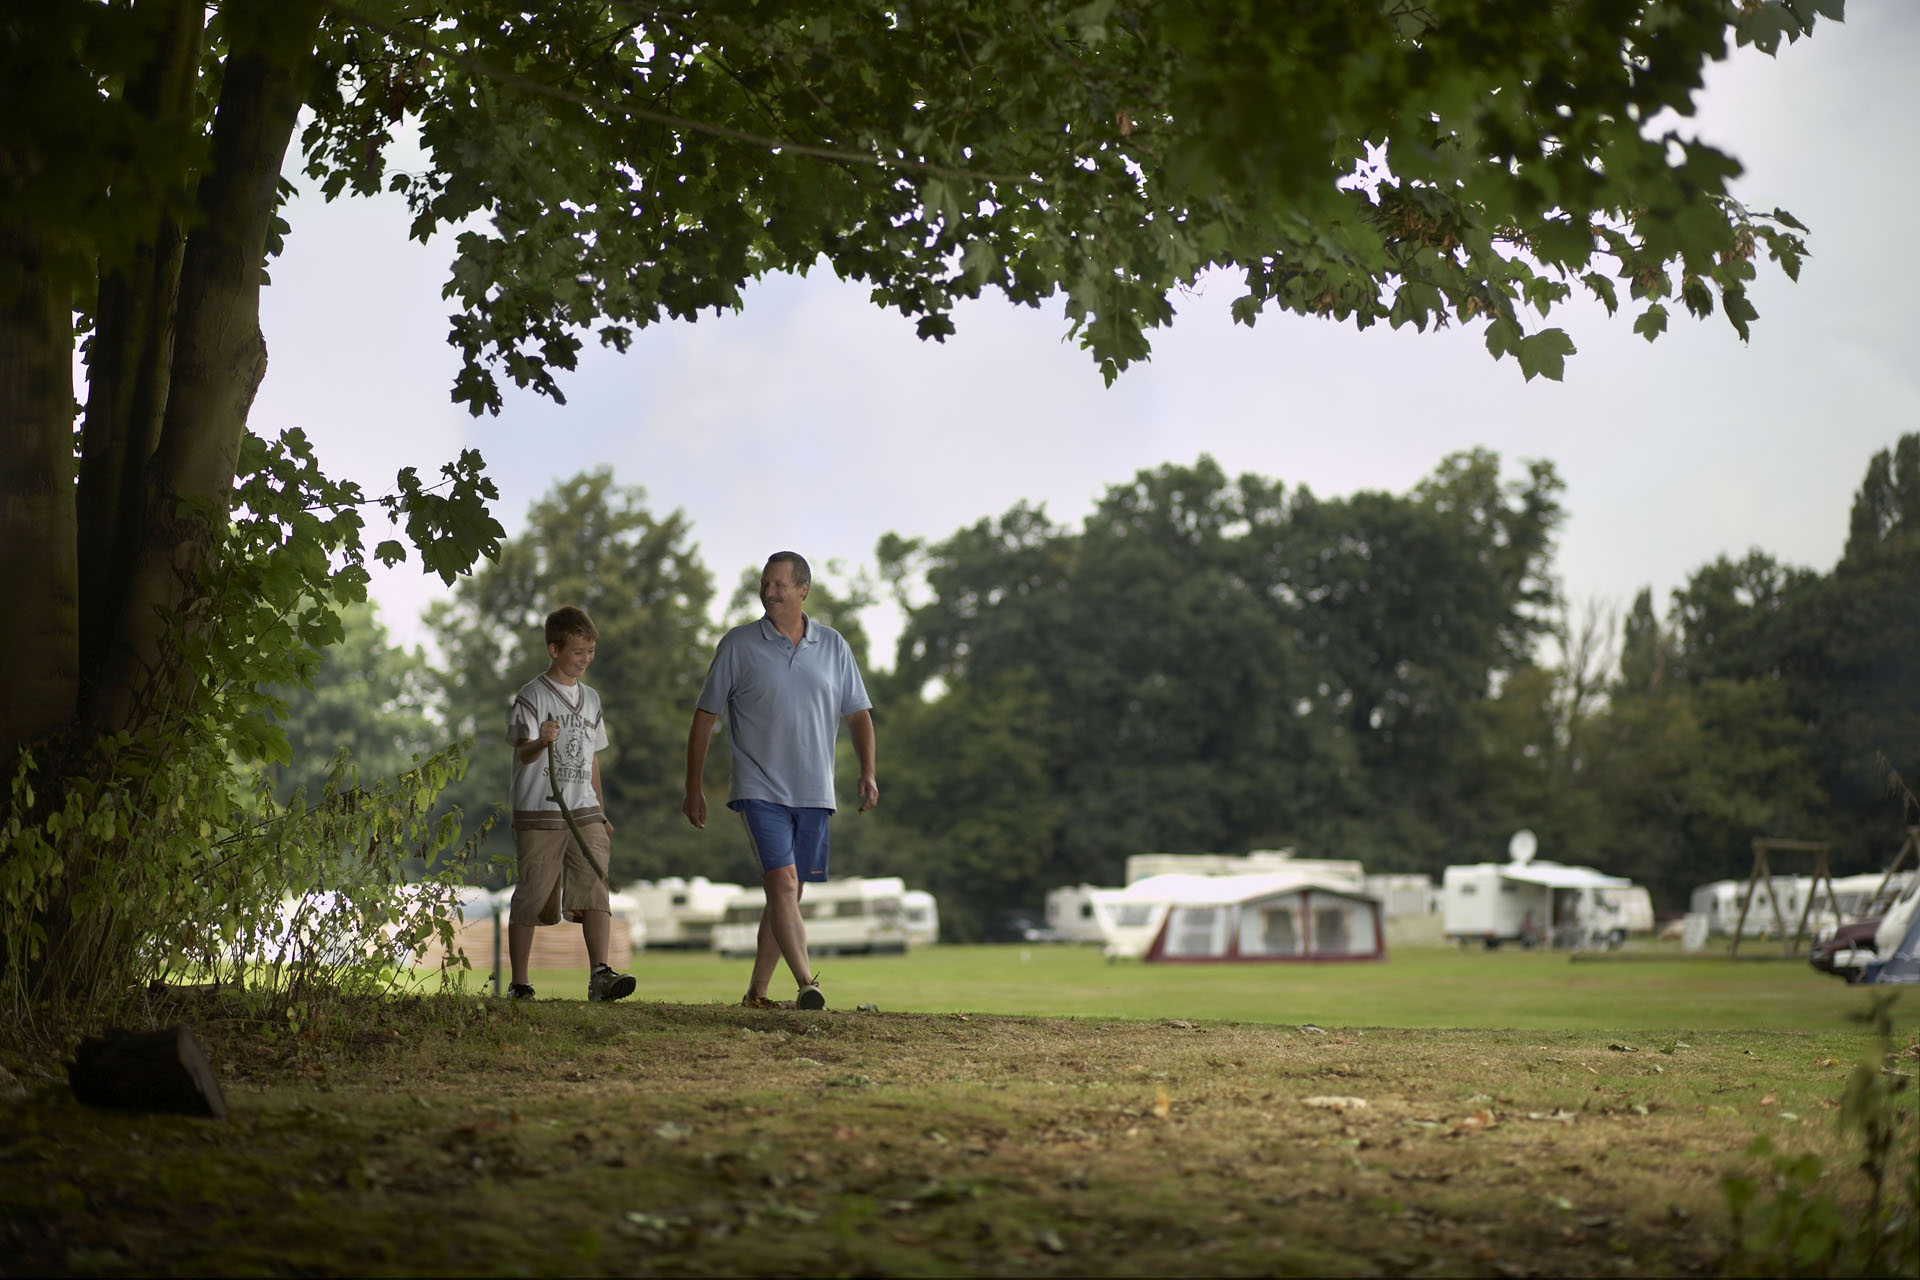 Theobalds Park - Camping and Caravanning Club Site - The